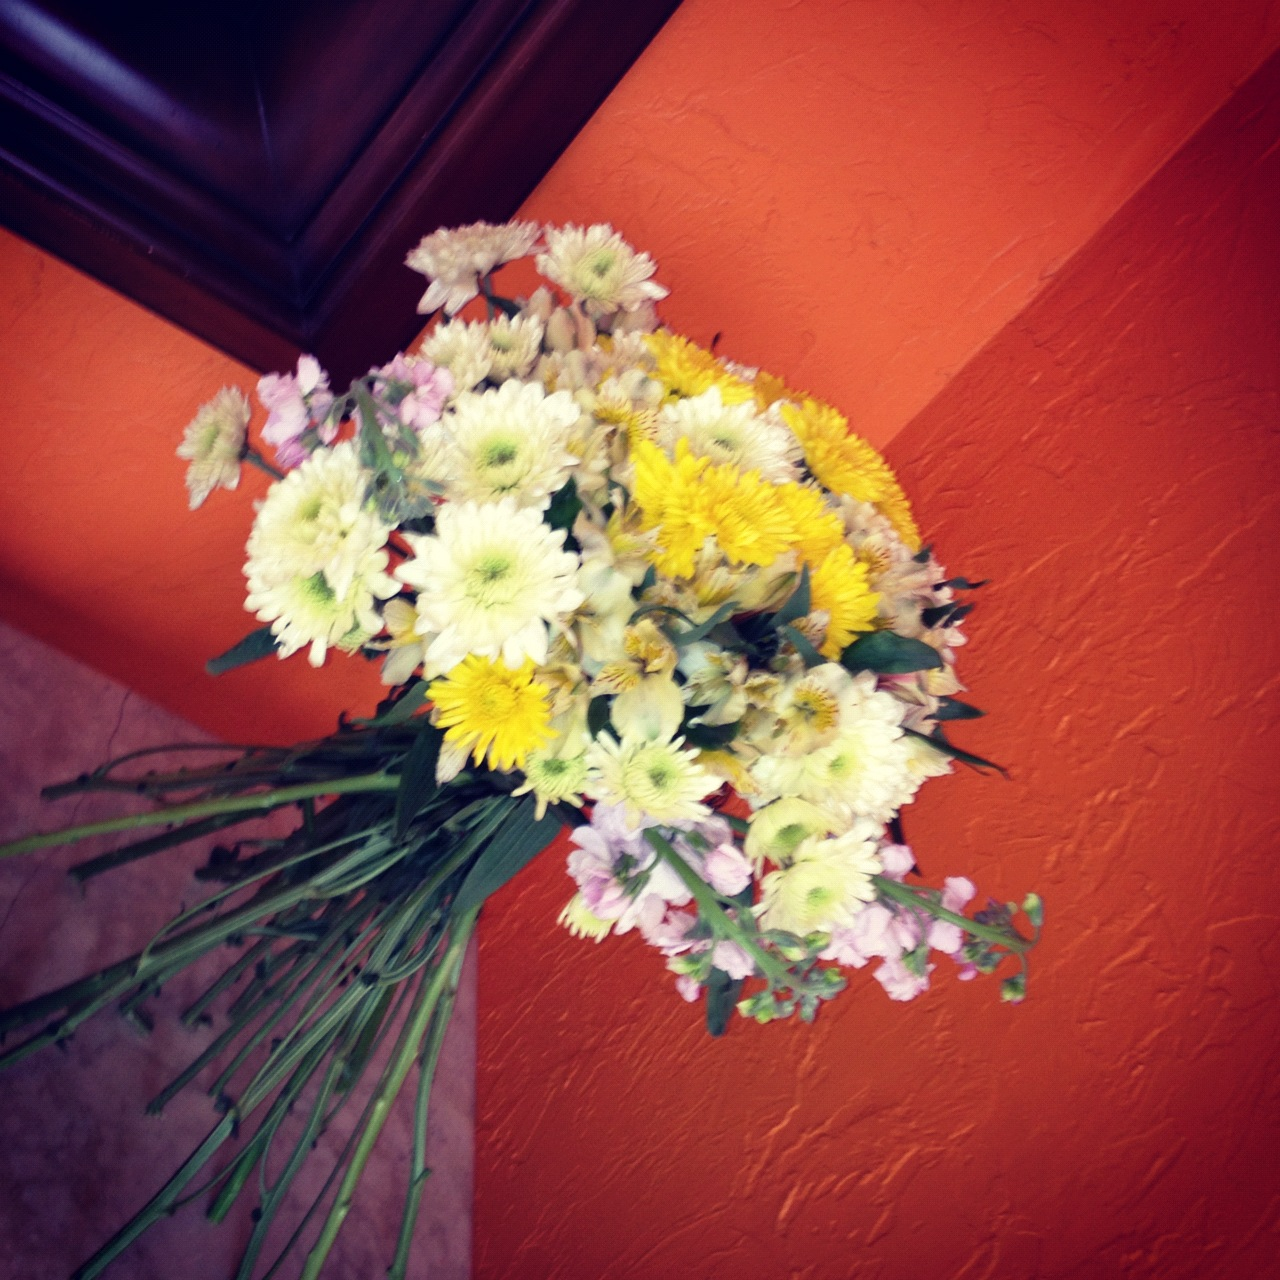 On The Budget Flowers For Your House